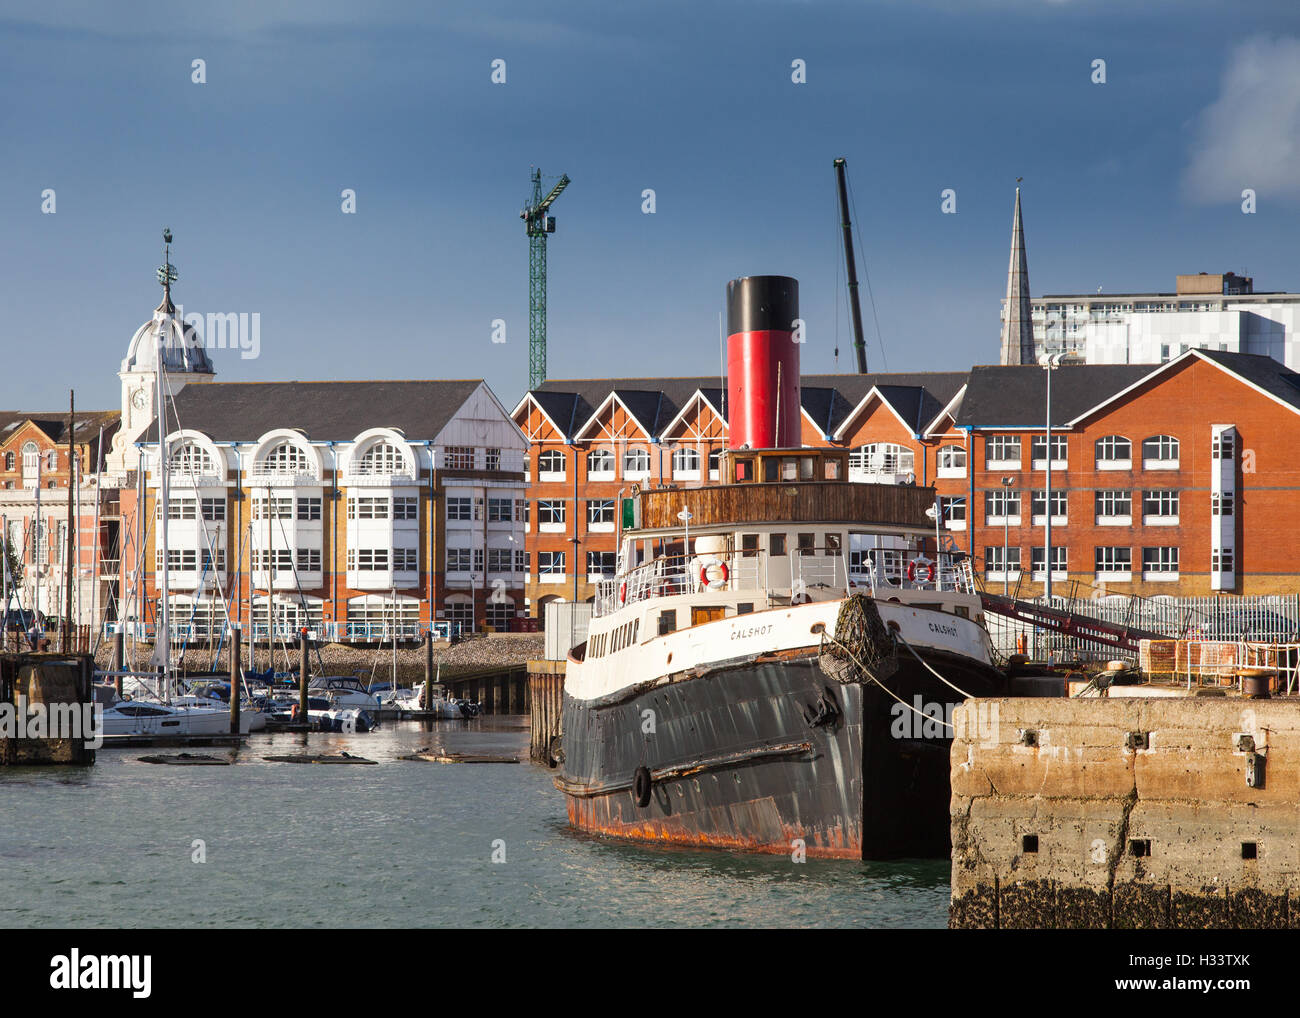 Southampton waterfront and Town Quay with historic tug boat Calshot in the foreground - Stock Image